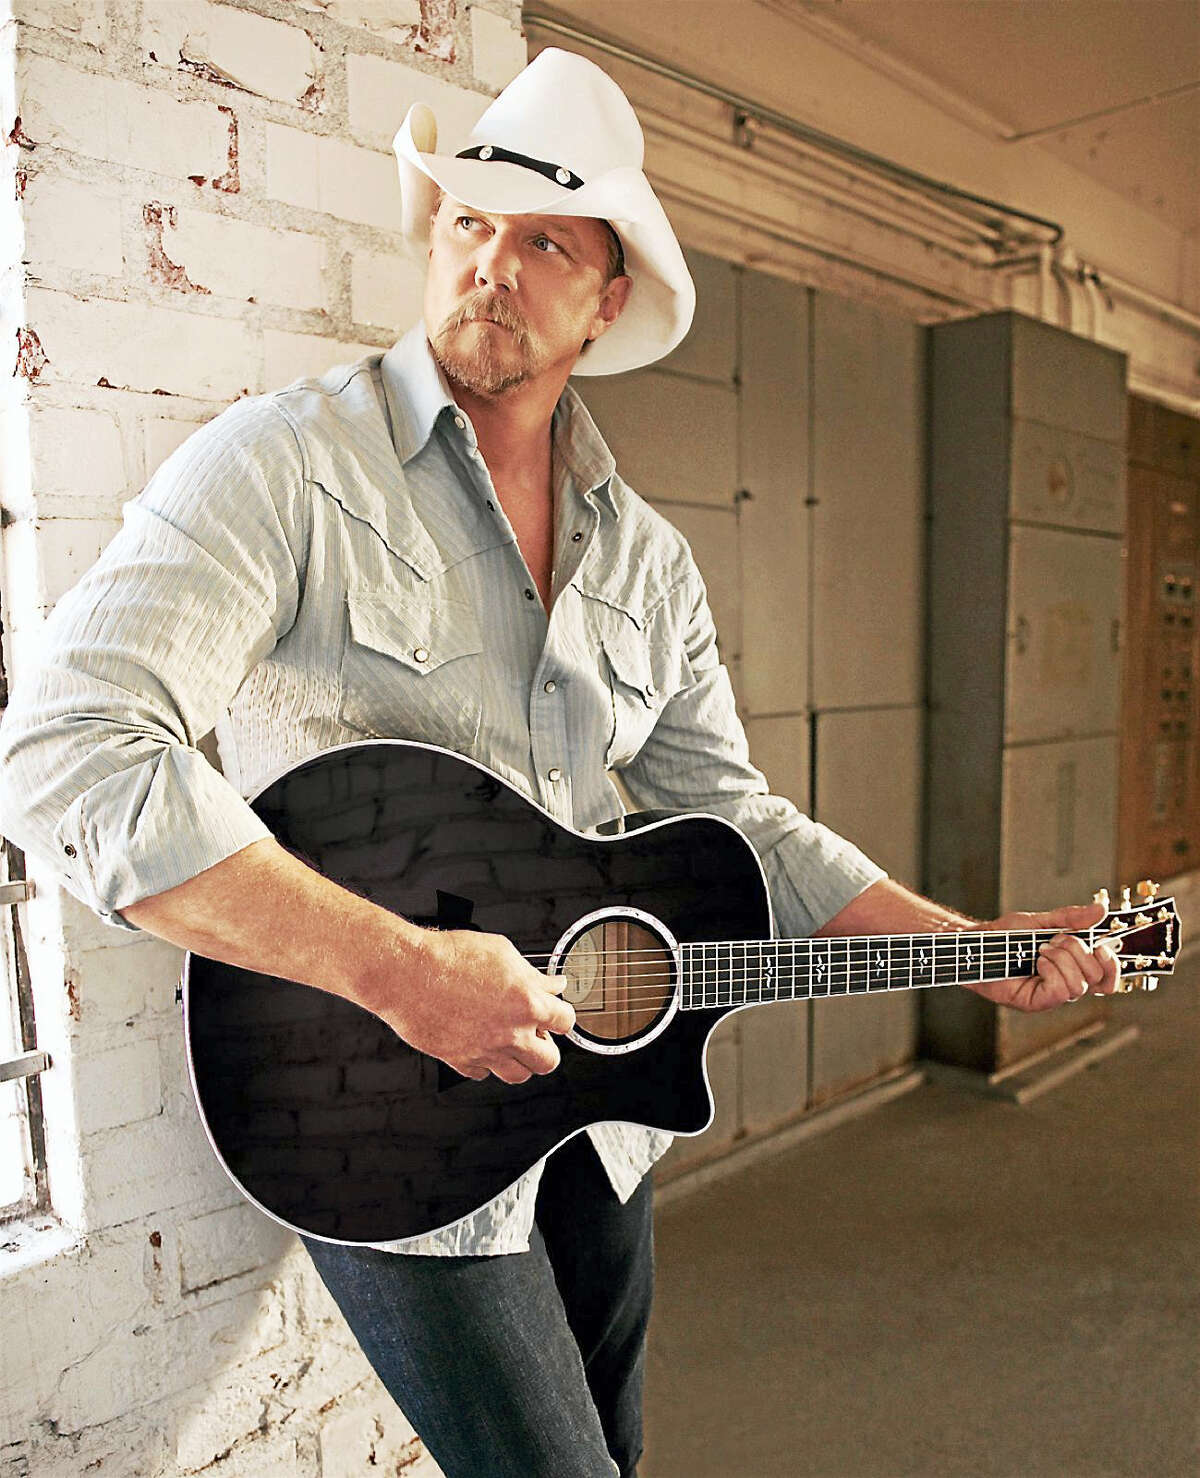 Contributed photoCountry music singer and actor, Trace Adkins, will perform at Indian Ranch in Webster, Massachusetts on Sunday, Sept. 26.